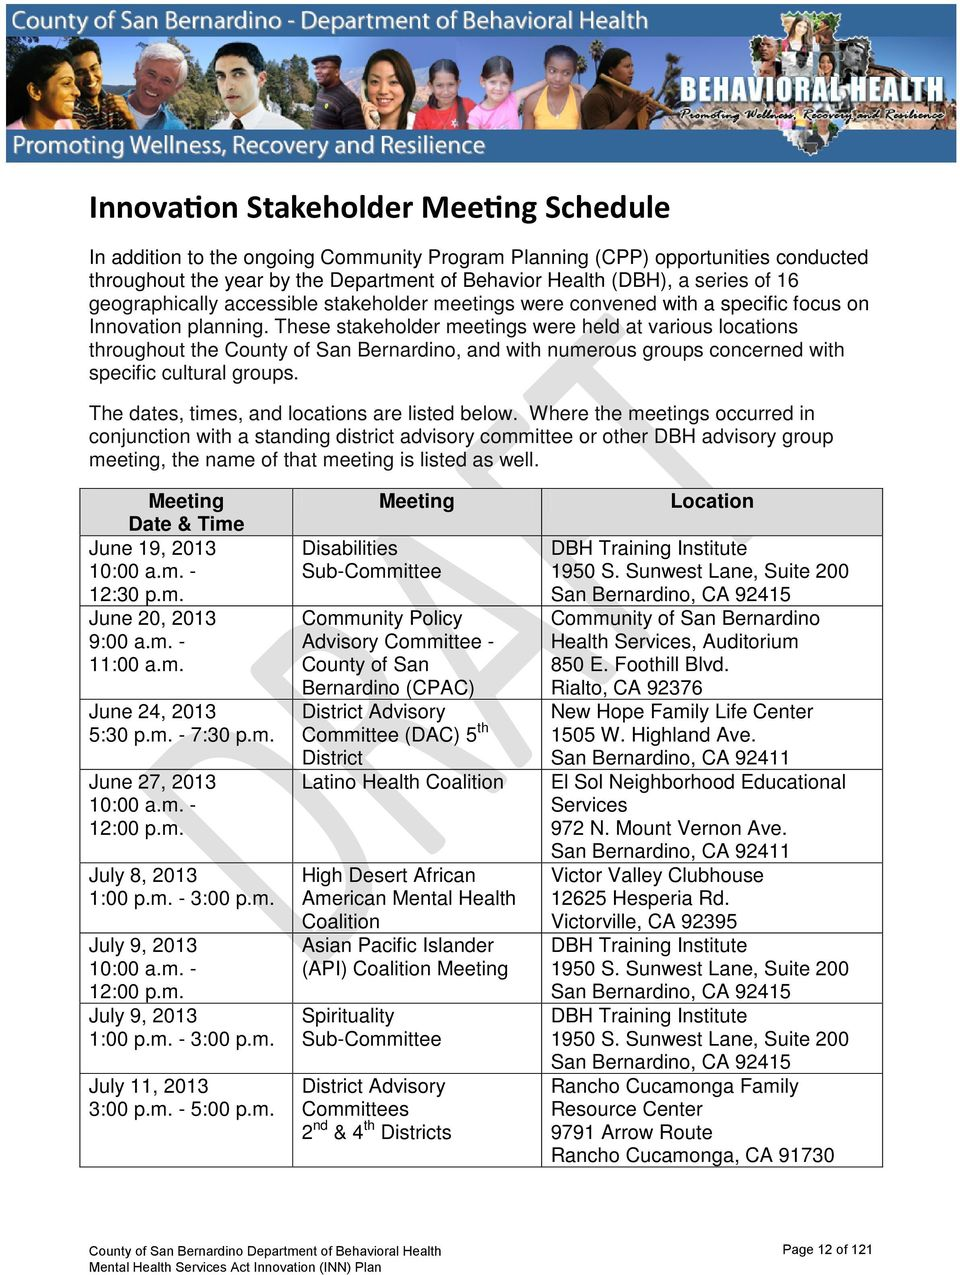 These stakeholder meetings were held at various locations throughout the County of San Bernardino, and with numerous groups concerned with specific cultural groups.